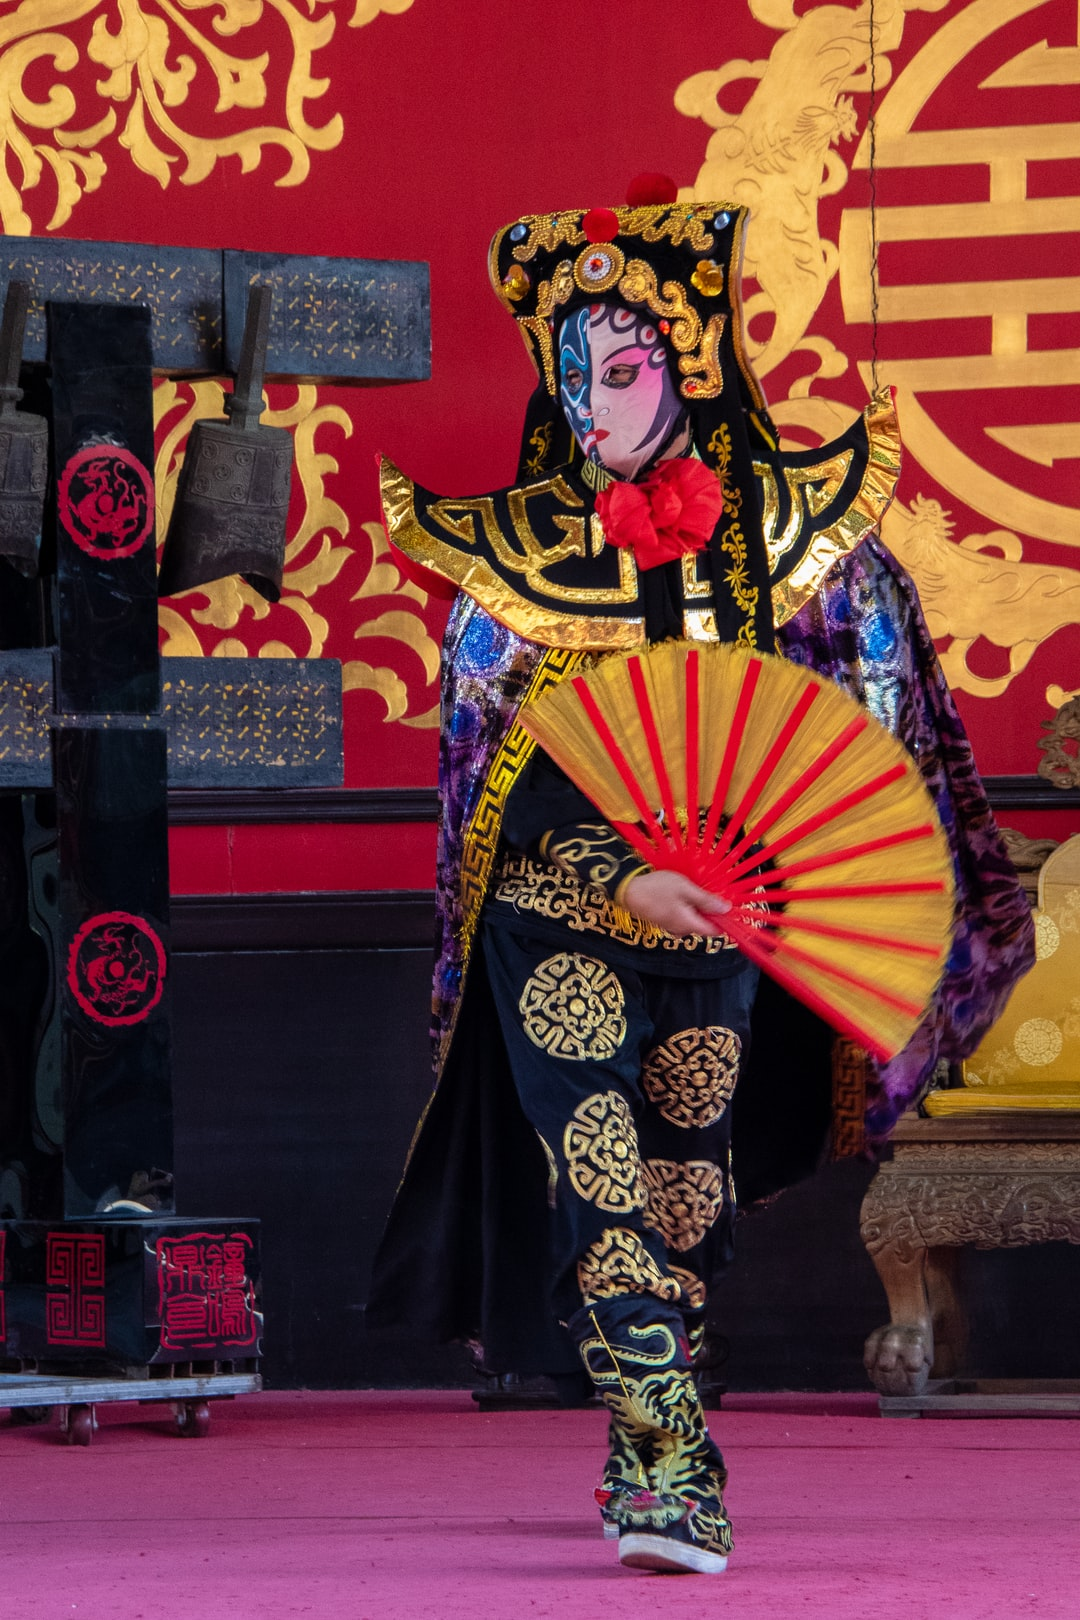 A Chinese Mask Actor, entertaining tourists at the Summer Palace, Beijing, China.